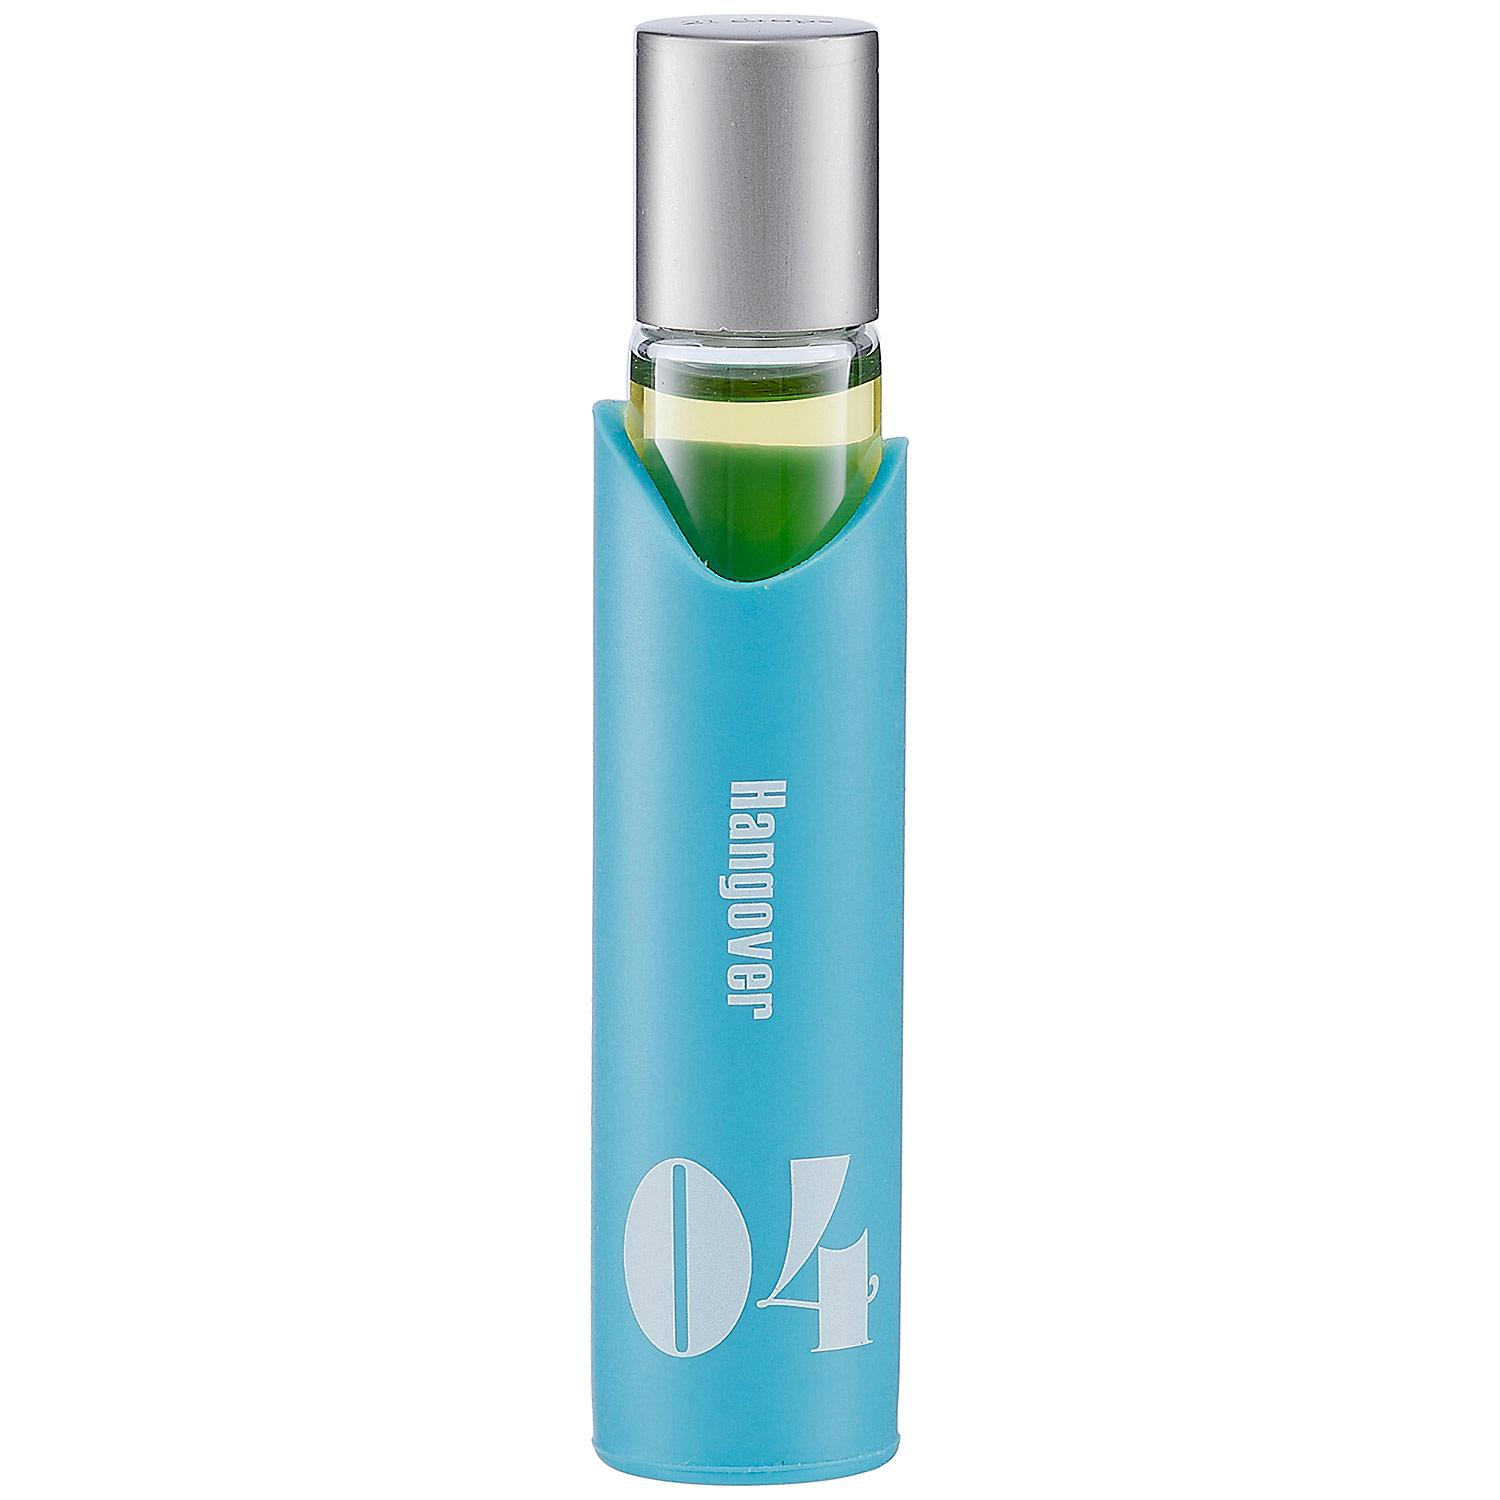 04 Hangover Essential Oil Rollerball